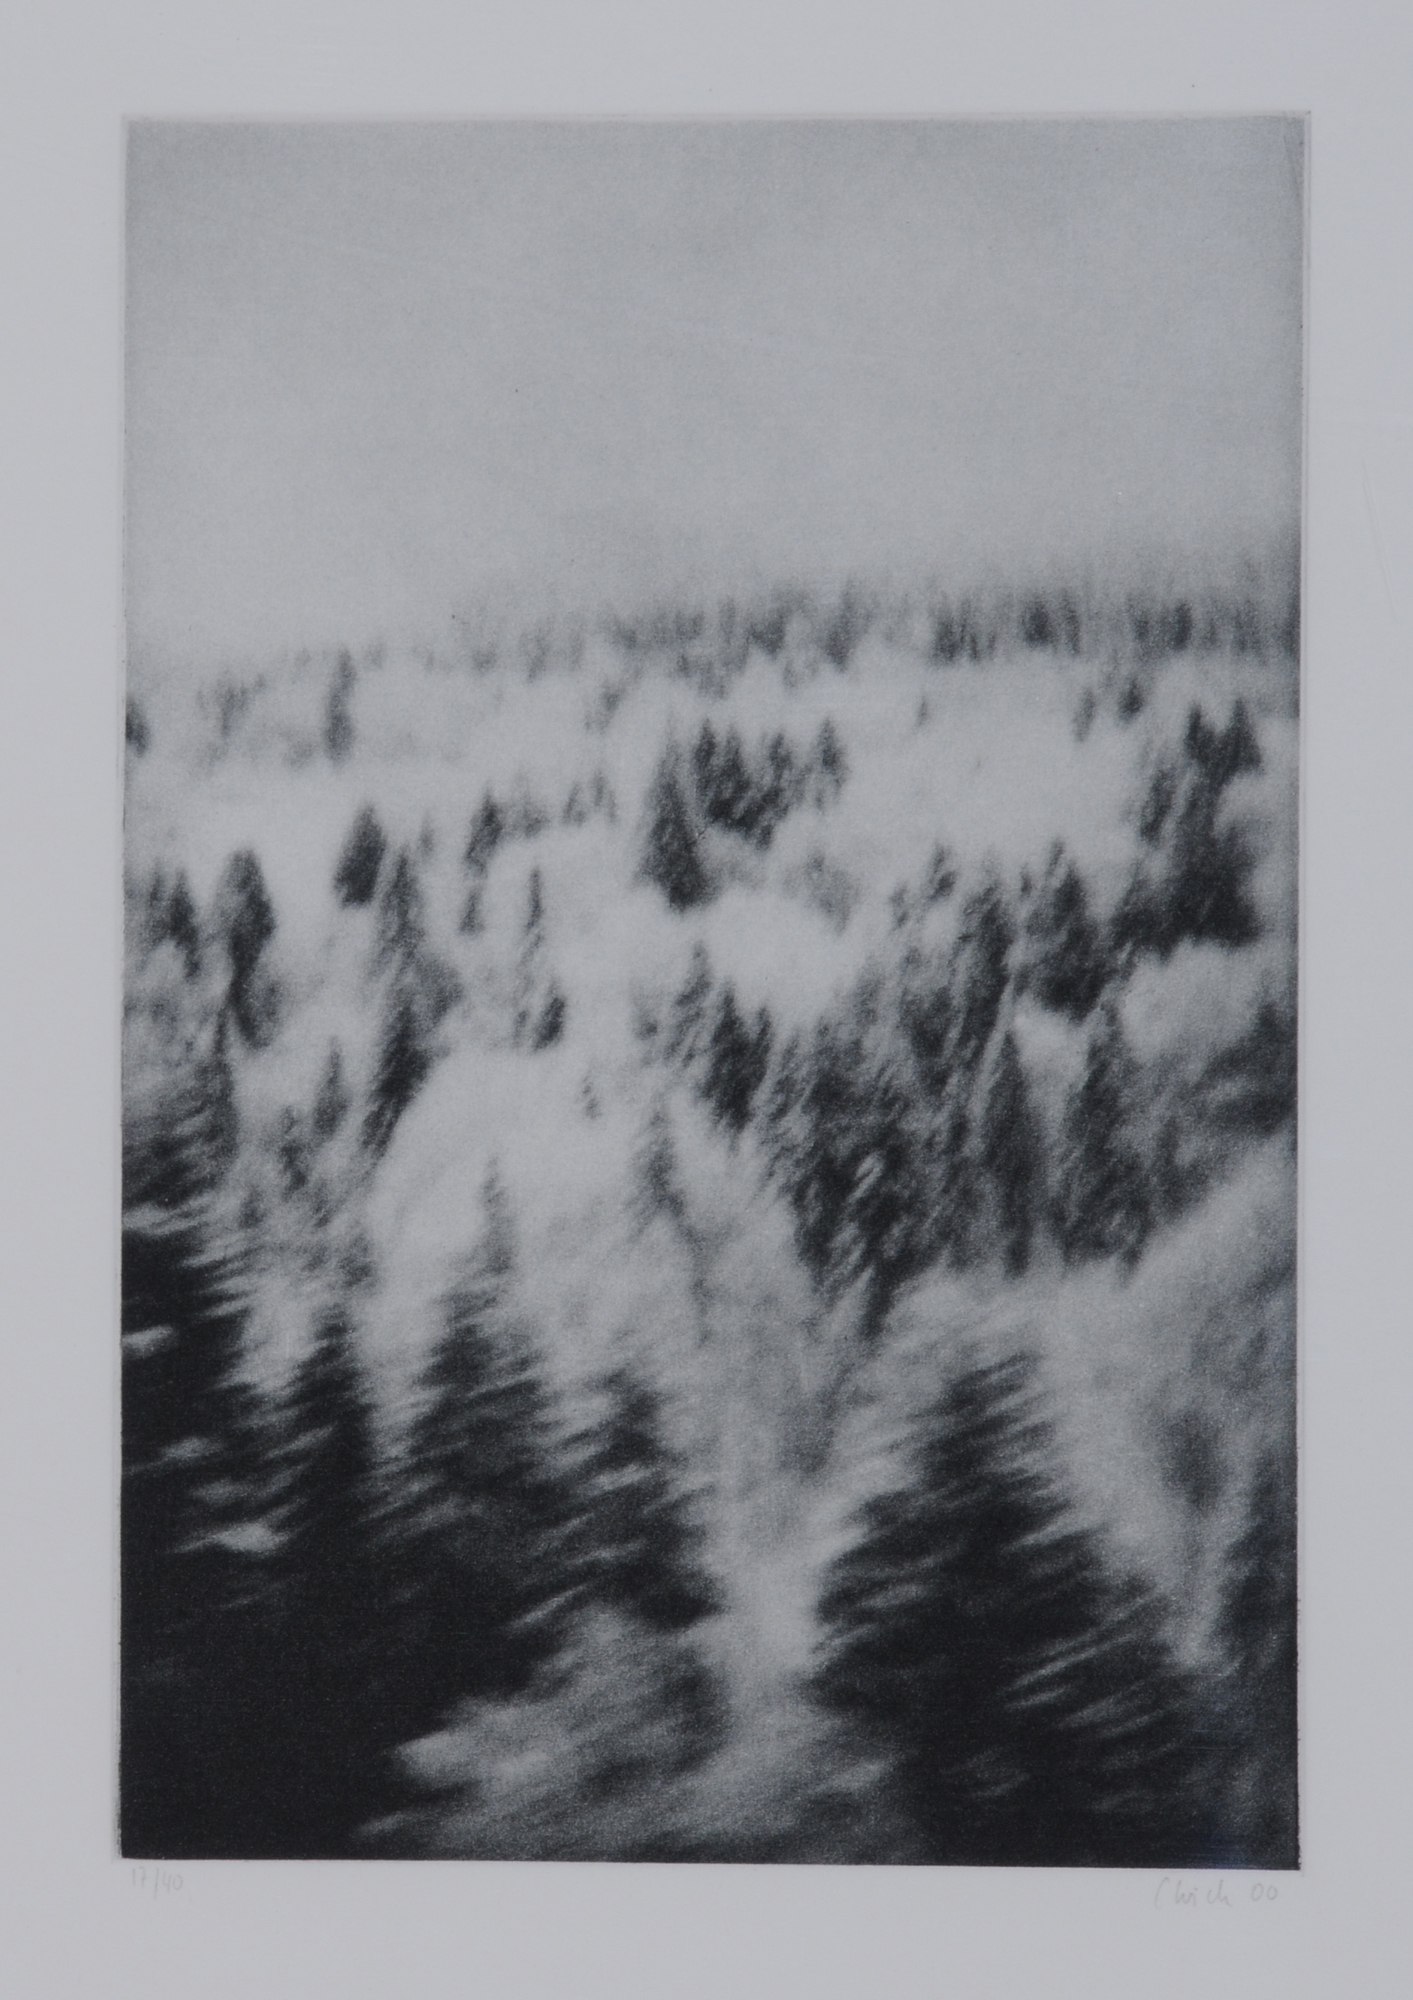 Wick Cécile, 2 sheets: Untitled